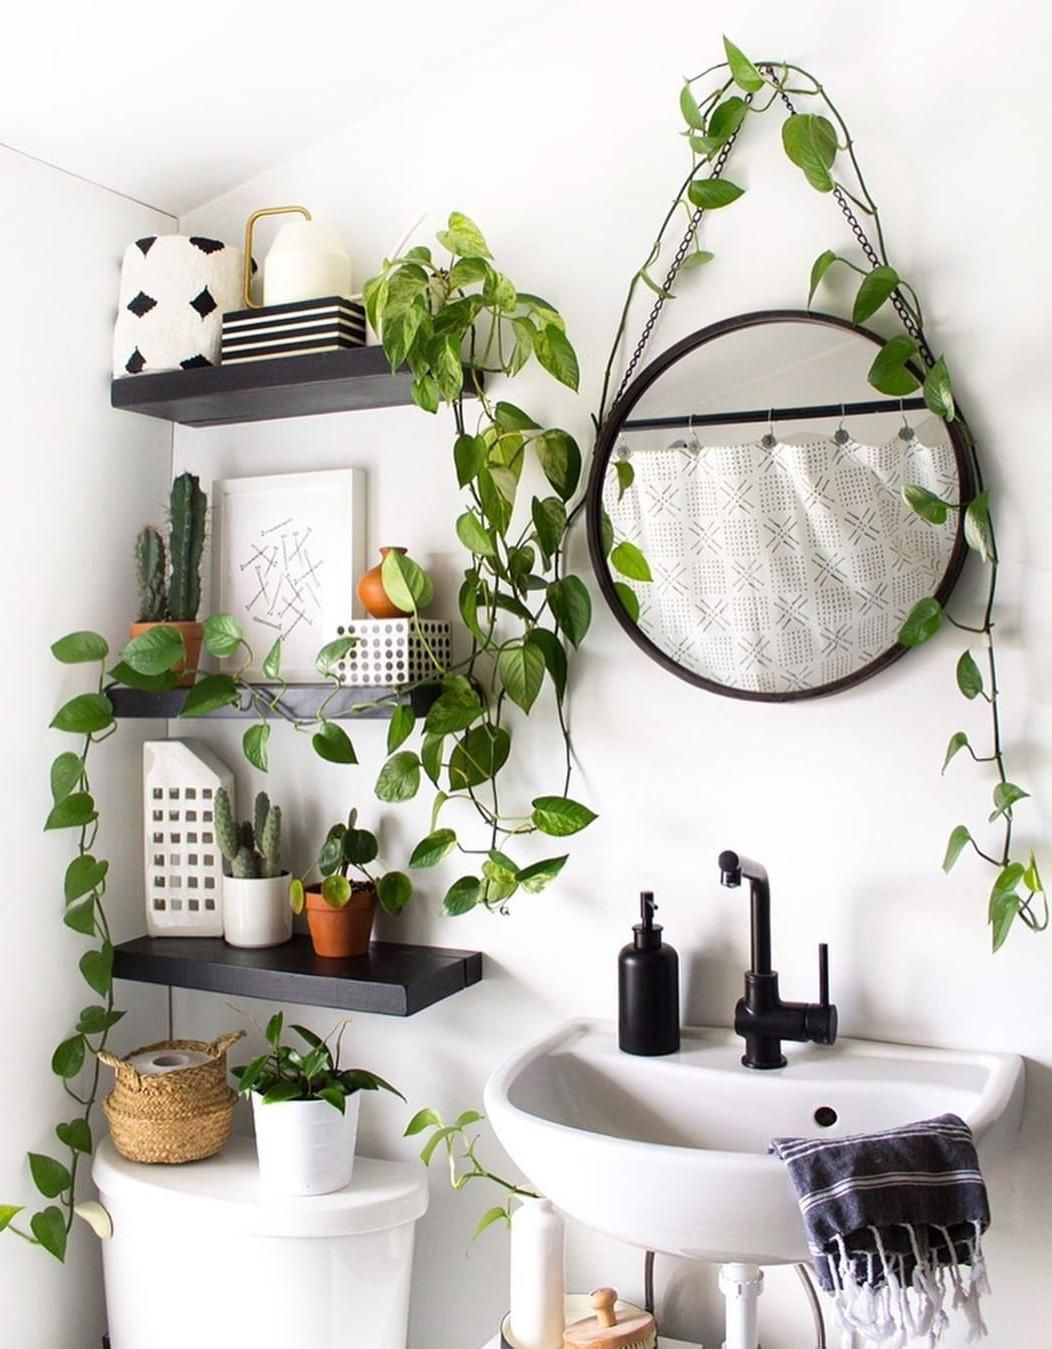 45 Ways To Display Plants In Your Home Small Bathroom Decor Room Decor Home Decor